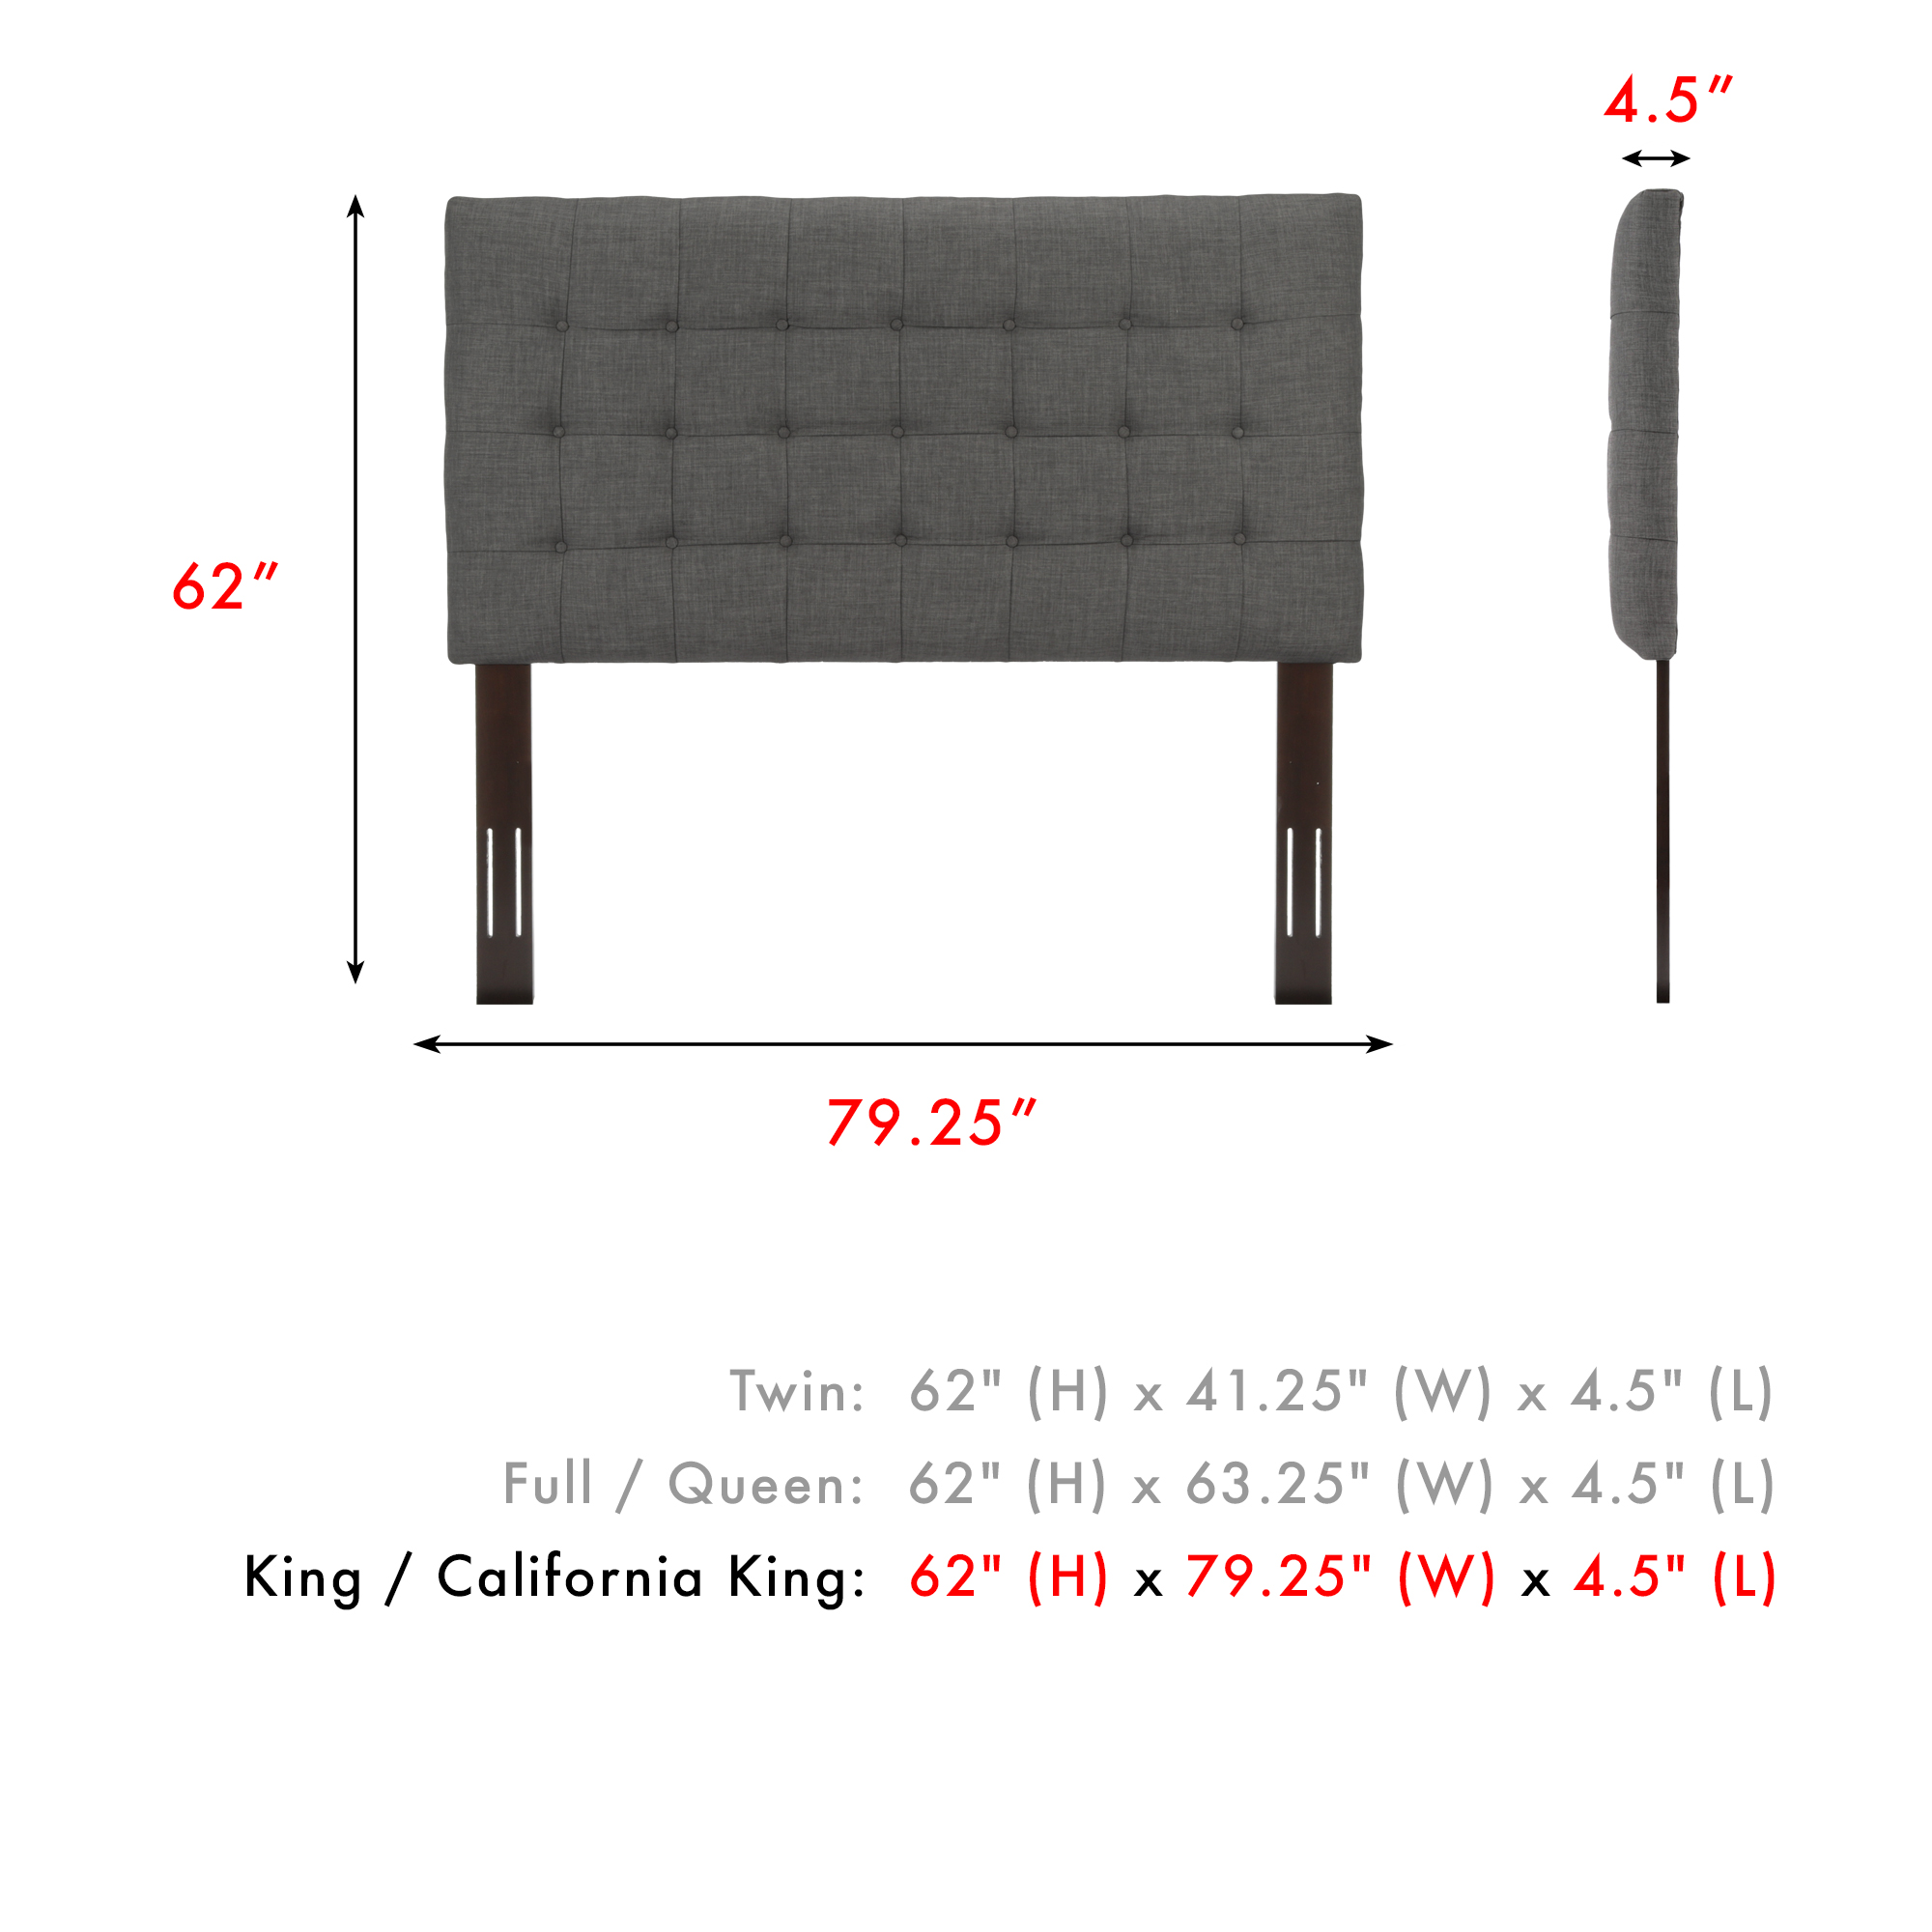 8aab030bd53a Fashion Bed Group Strasbourg Button-Tuft Upholstered Headboard With  Adjustable Height